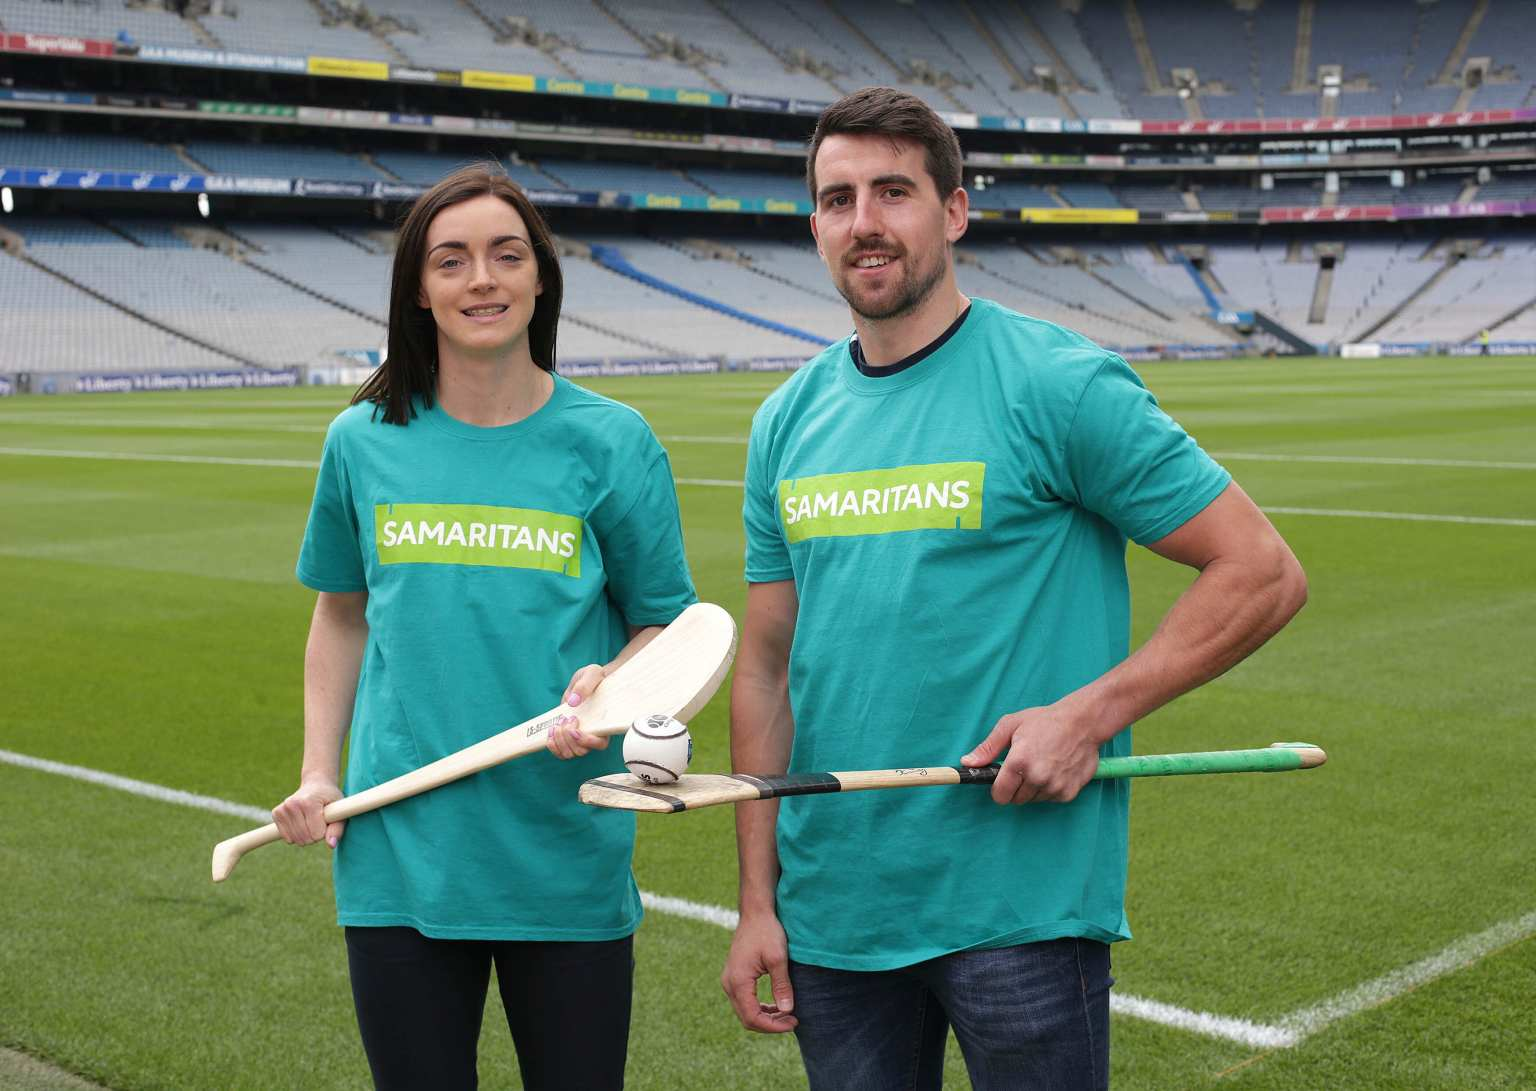 Dublin Senior Camogie Player Eve O'Brien (L) and Tipperary hurler Patrick 'Bonner' Maher at Croke Park as the Samaritans and the GAA celebrate five years as Mental Health Partners.